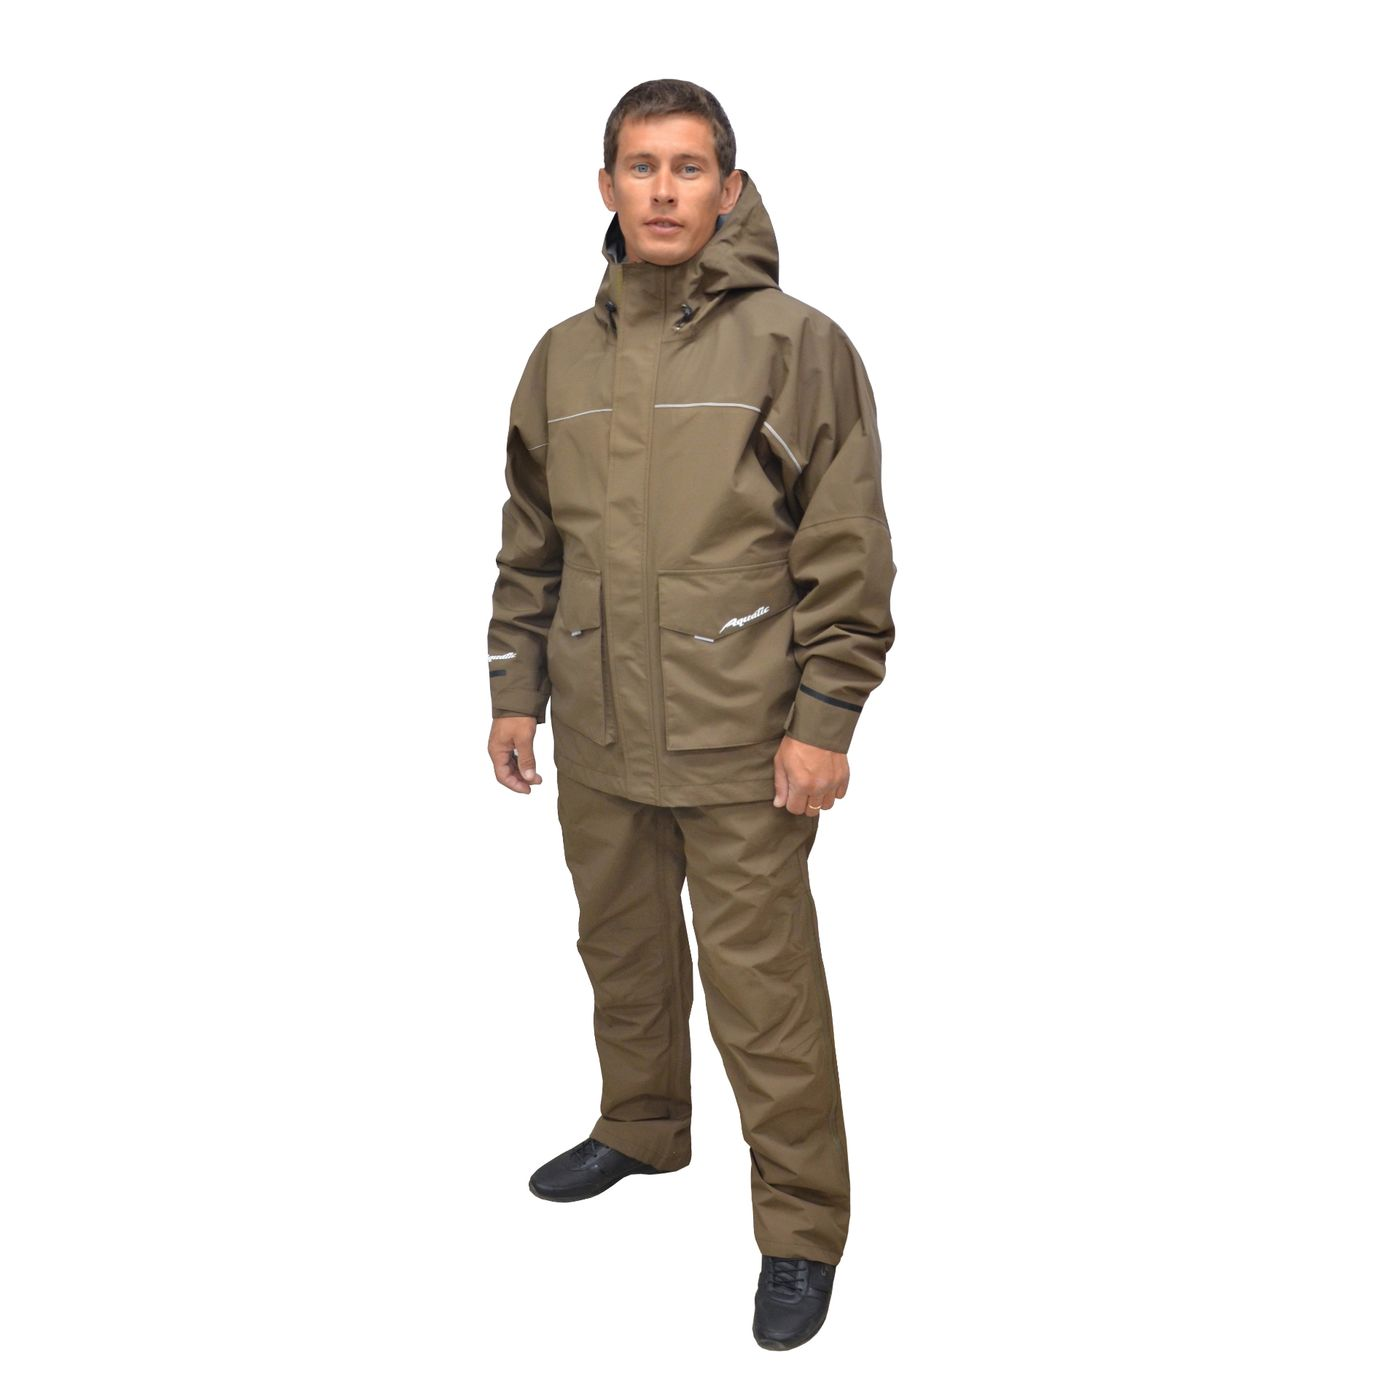 Suit From The Rain Membrane Aquatic K-15f, Beige K-15f 46-48